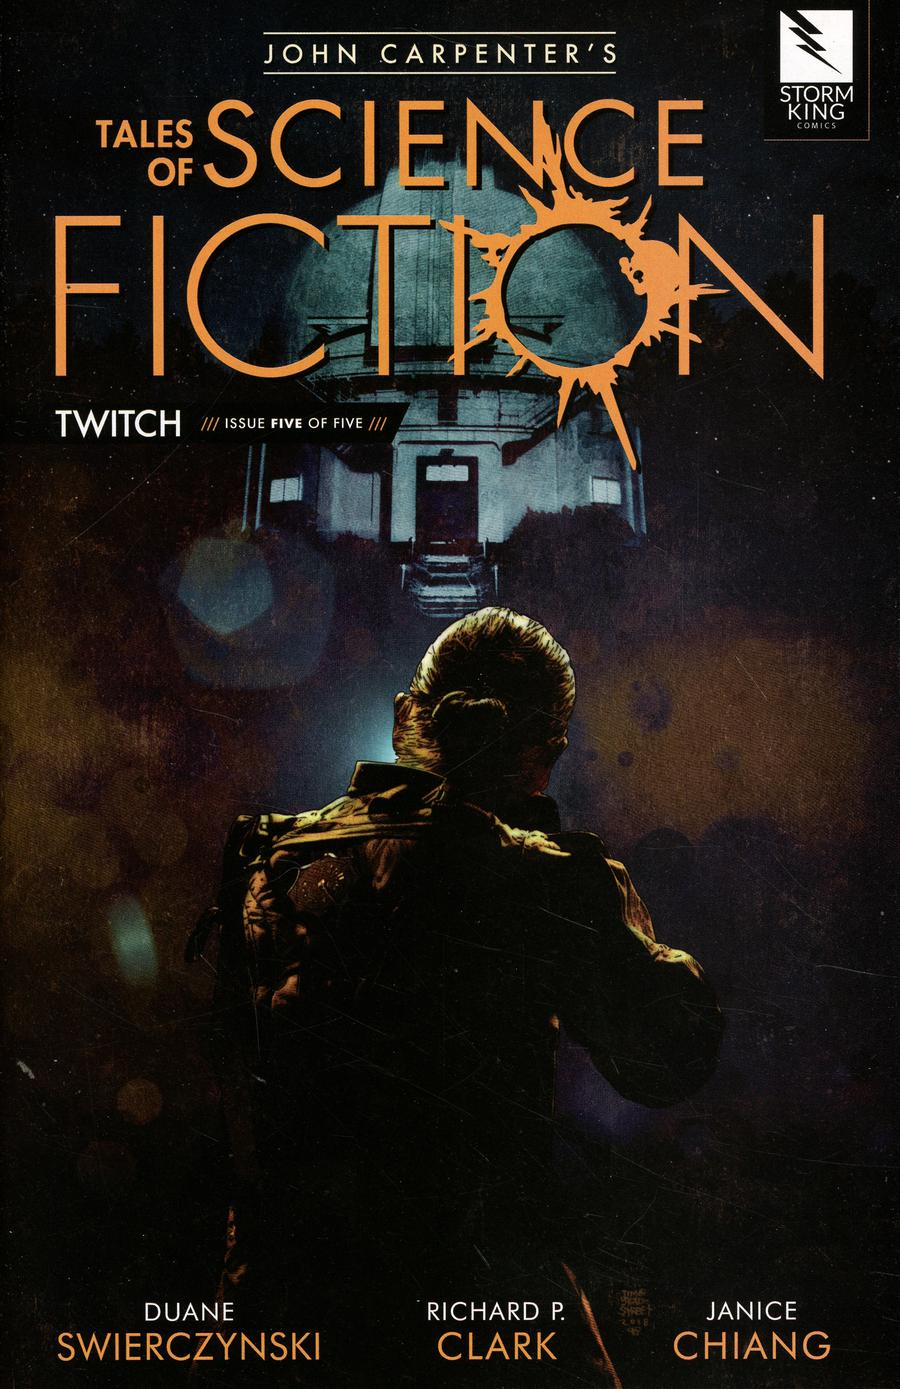 John Carpenters Tales Of Science Fiction Twitch #5 Cover A Tim Bradstreet Black